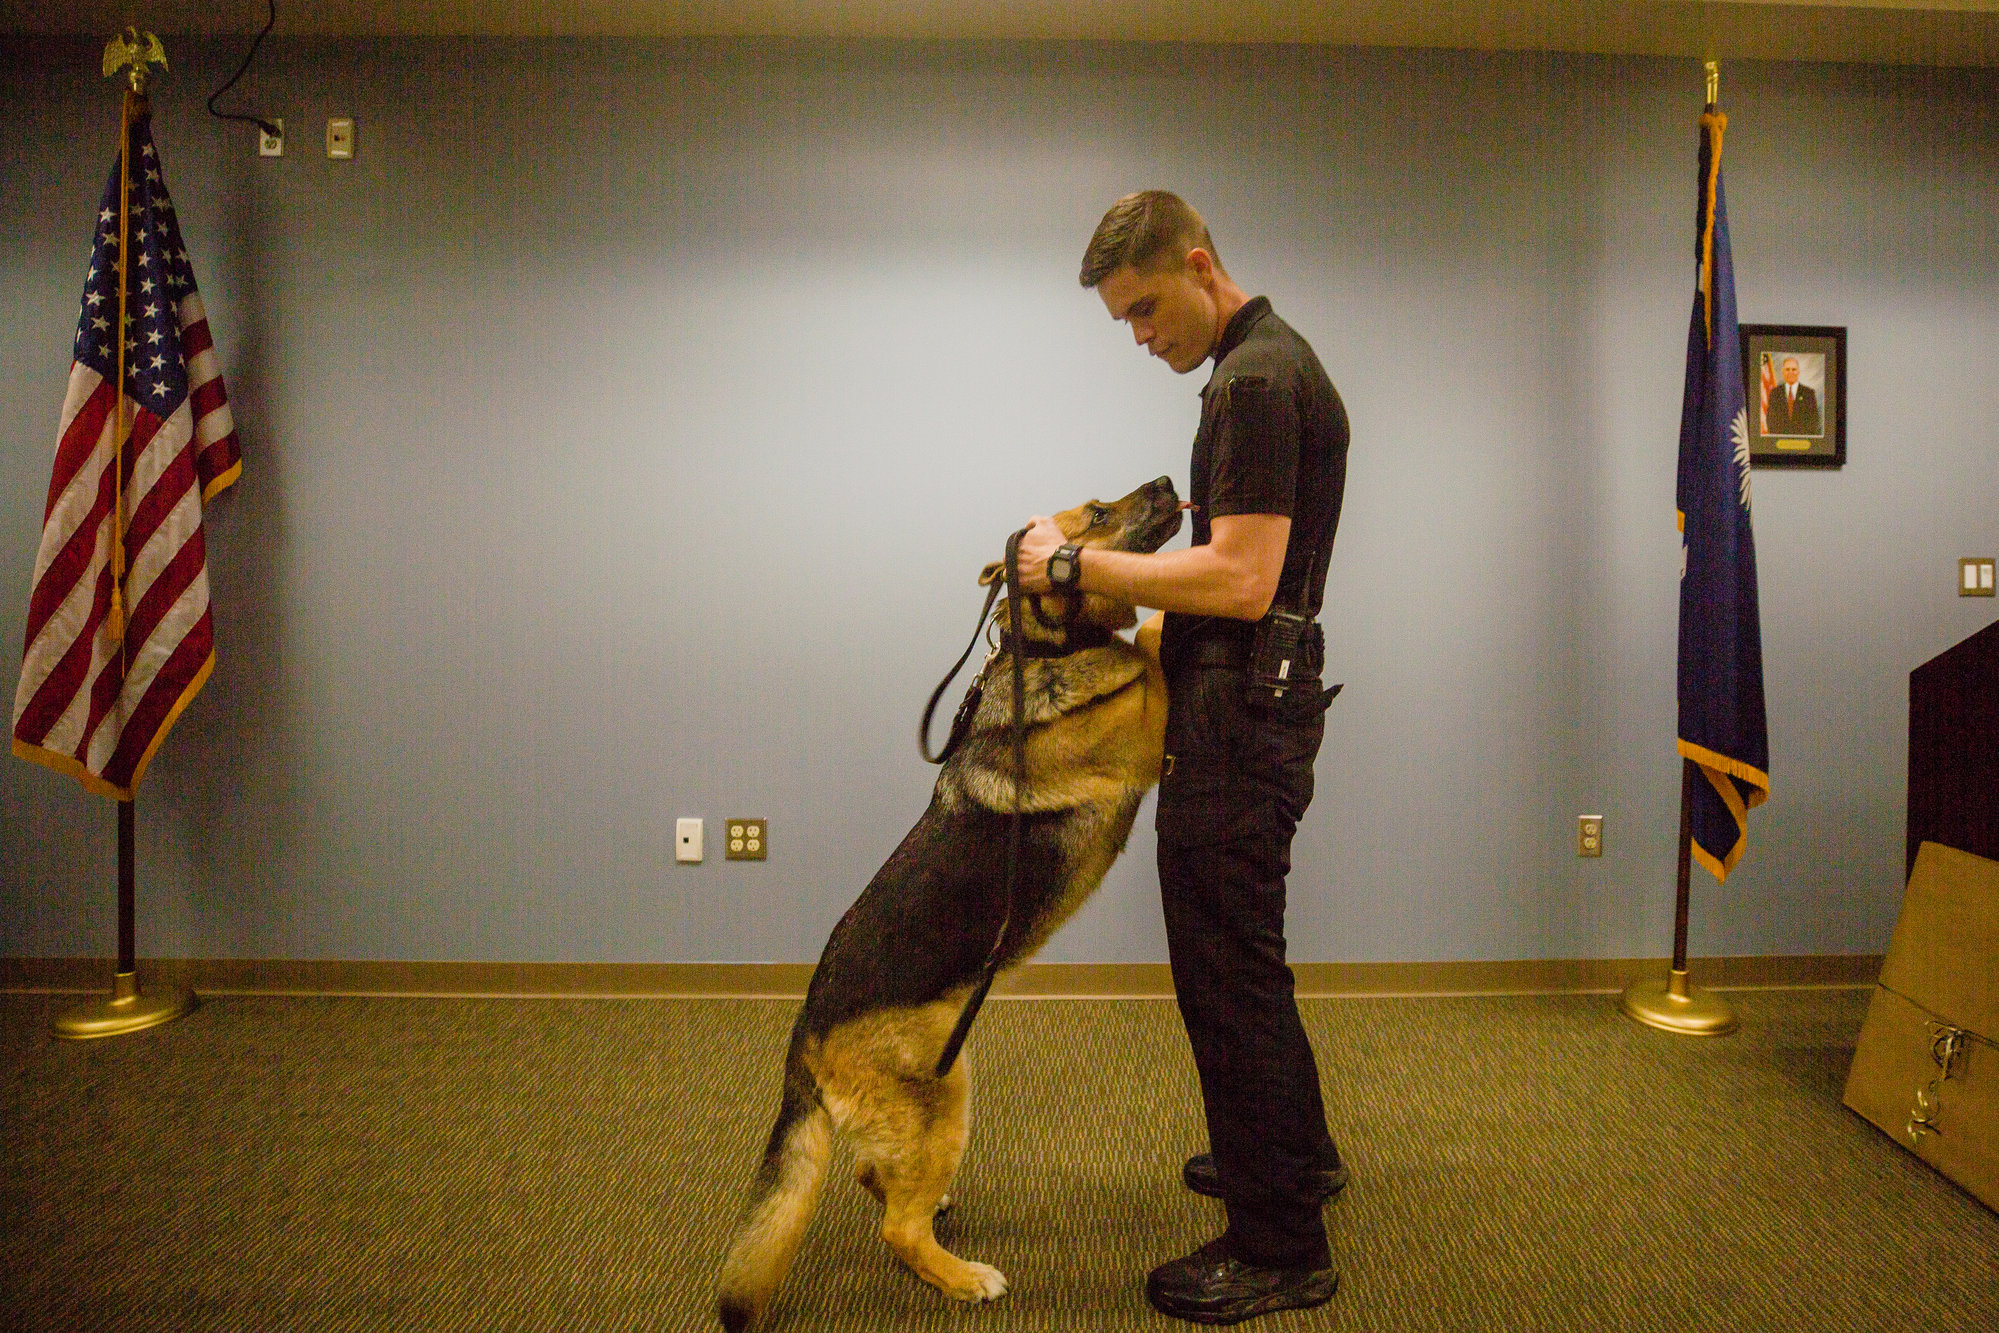 K-9 Dina, who officially retired from the Sumter County Sheriff's Office on Friday, is seen with her handler, Cpl. Evan Rogerson. She will now be a pet at Rogerson's home after nine years of service.